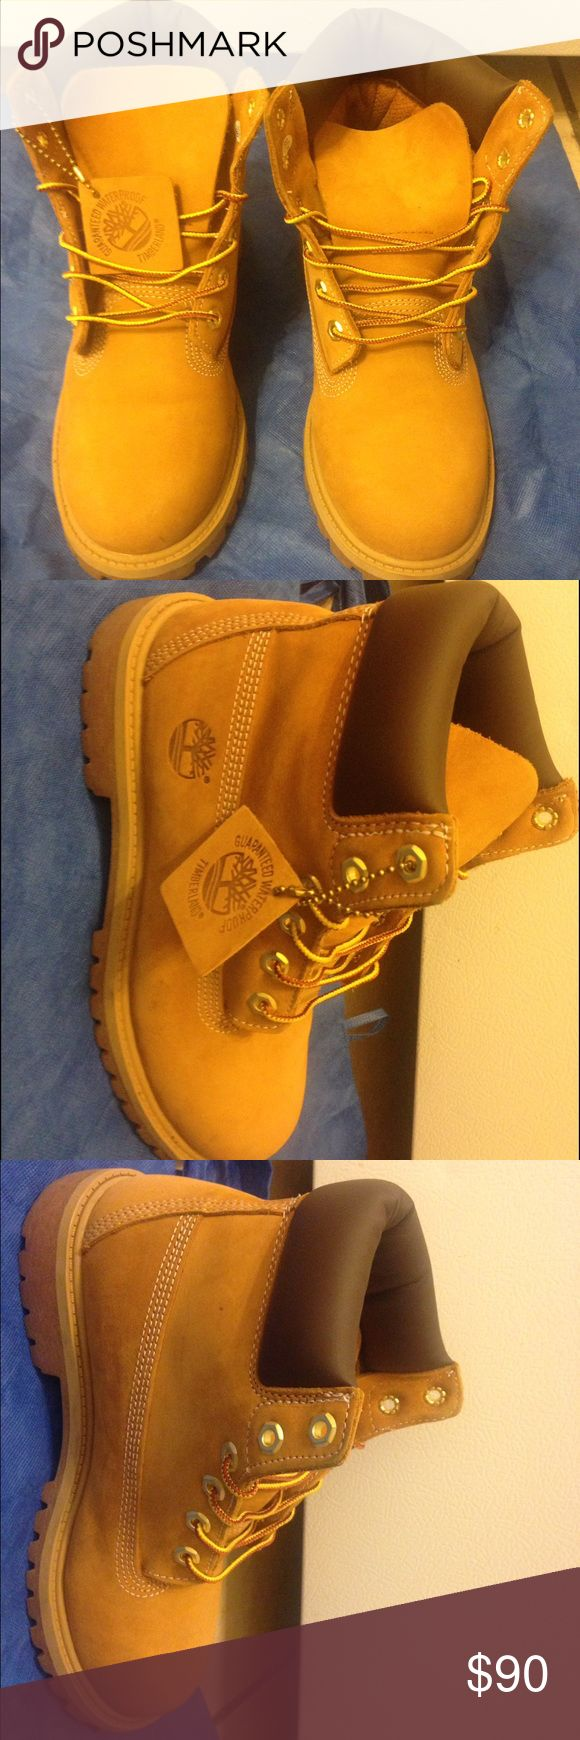 Boys Timberland Boots (Size 5.5) Pretty NEW Boys Timberlands Boots (Size 5.5) only worn 2 times pretty new (Feel free to ask questions) Timberland Shoes Boots